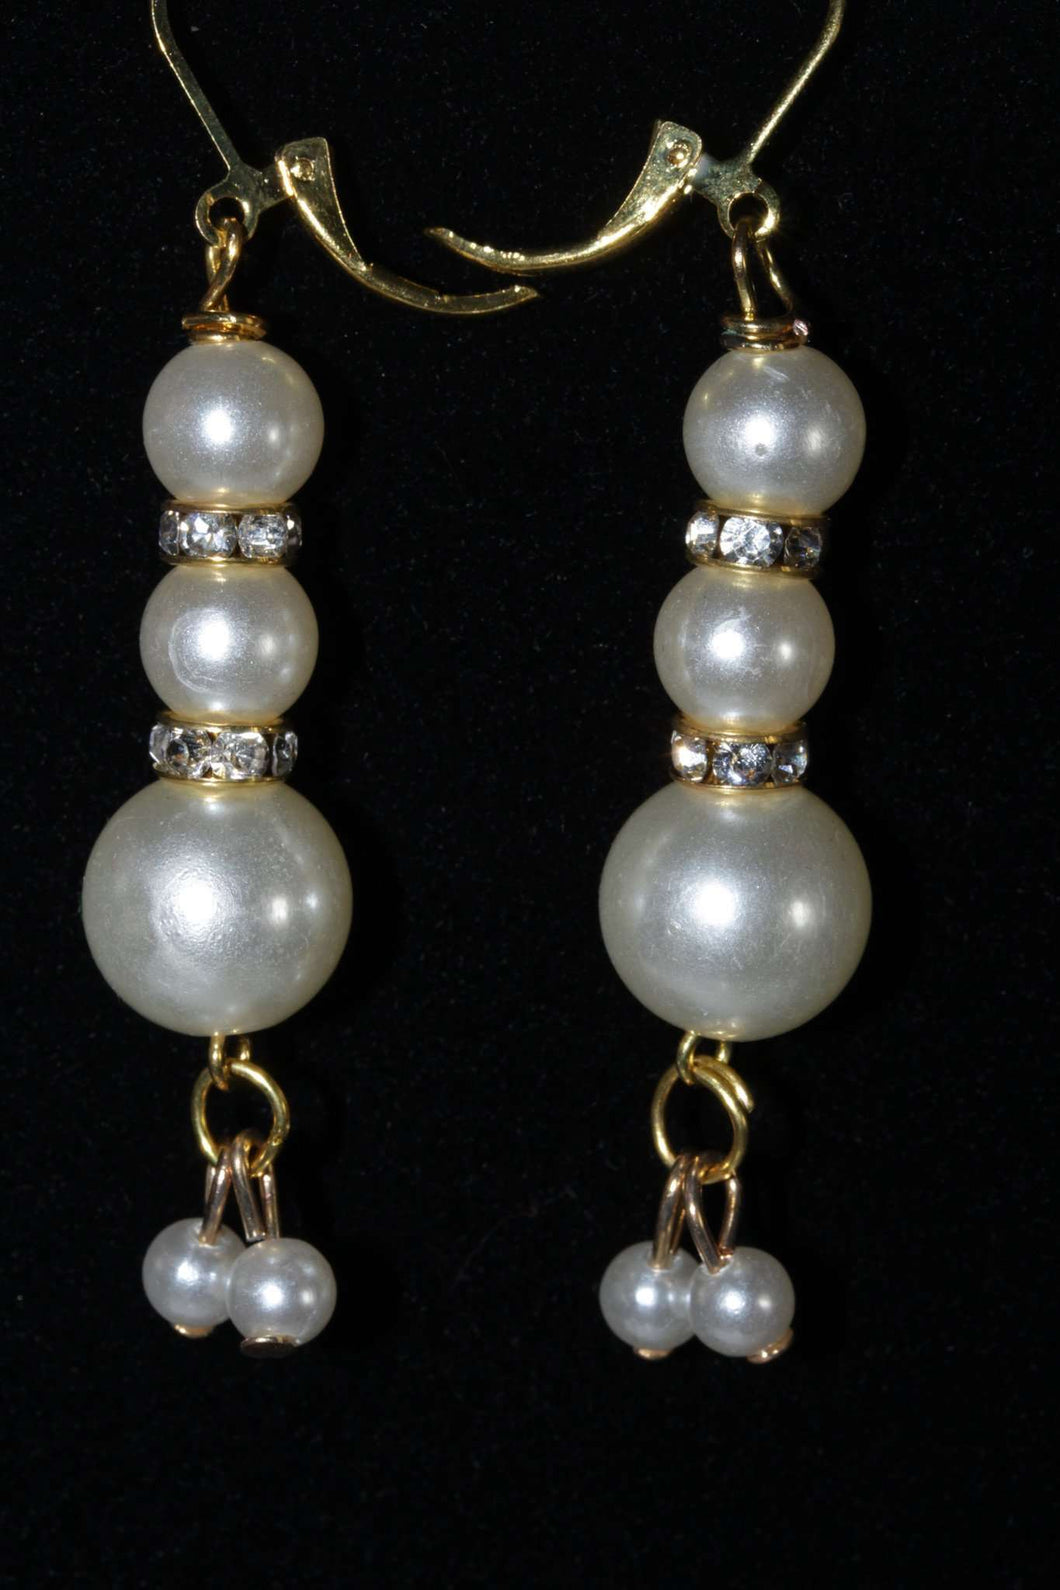 Faux Pearls & Pave Charm Earrings